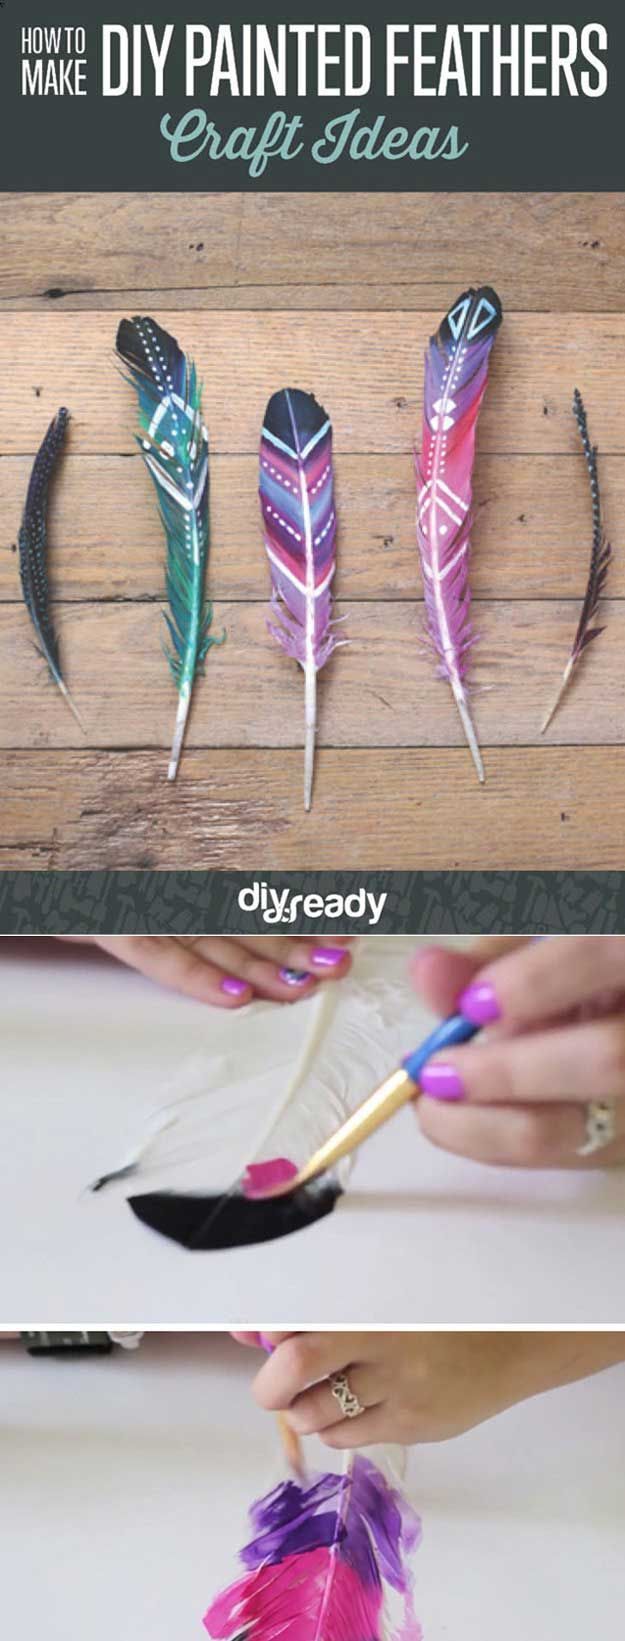 best ideas about teen art projects teen art art diy painted feathers and other cool art ideas